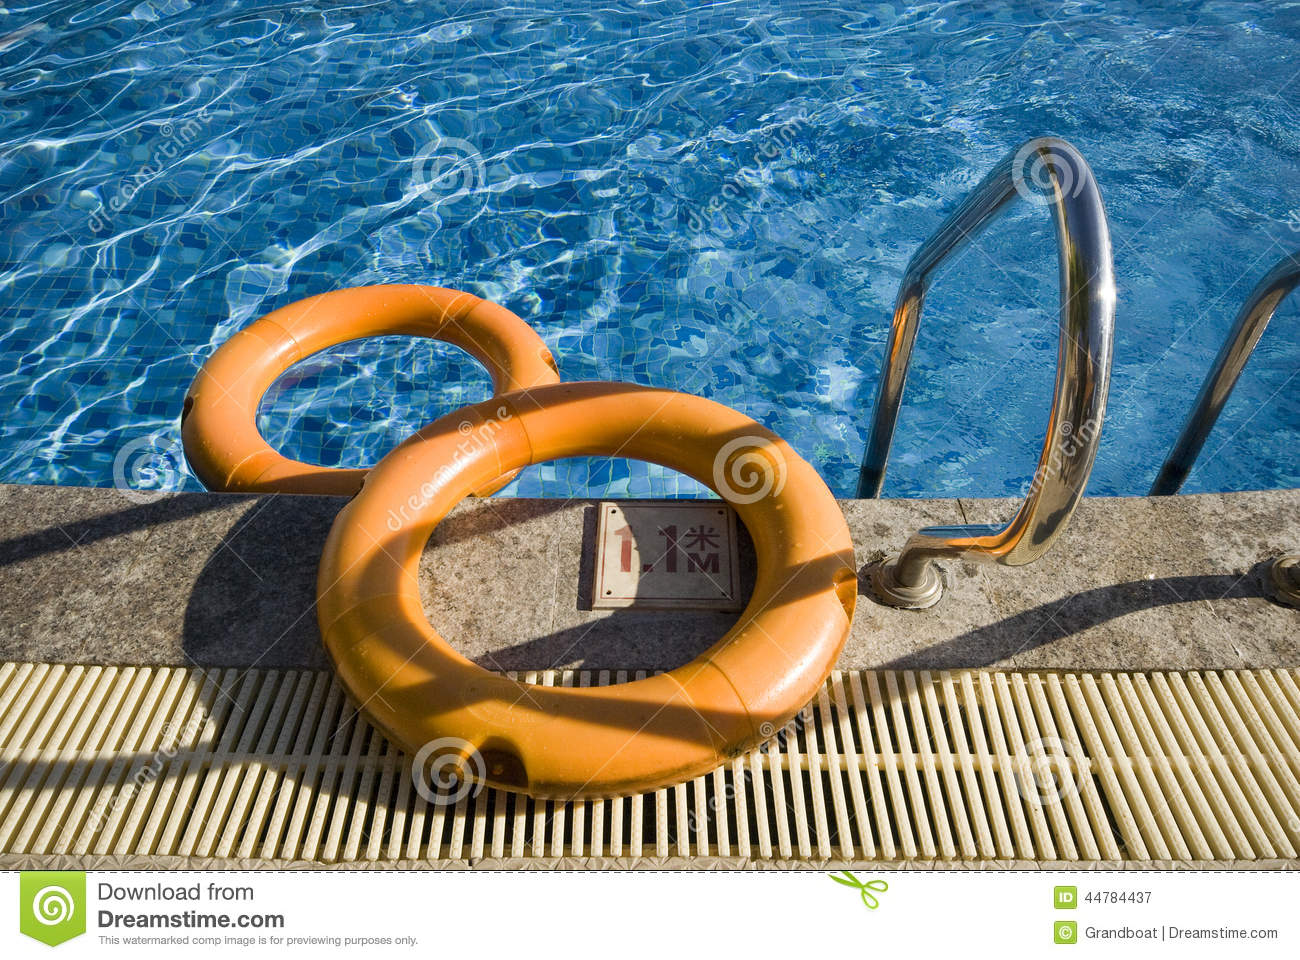 Rubber Swimming Pools : A swimming pool and rubber safety ring stock photo